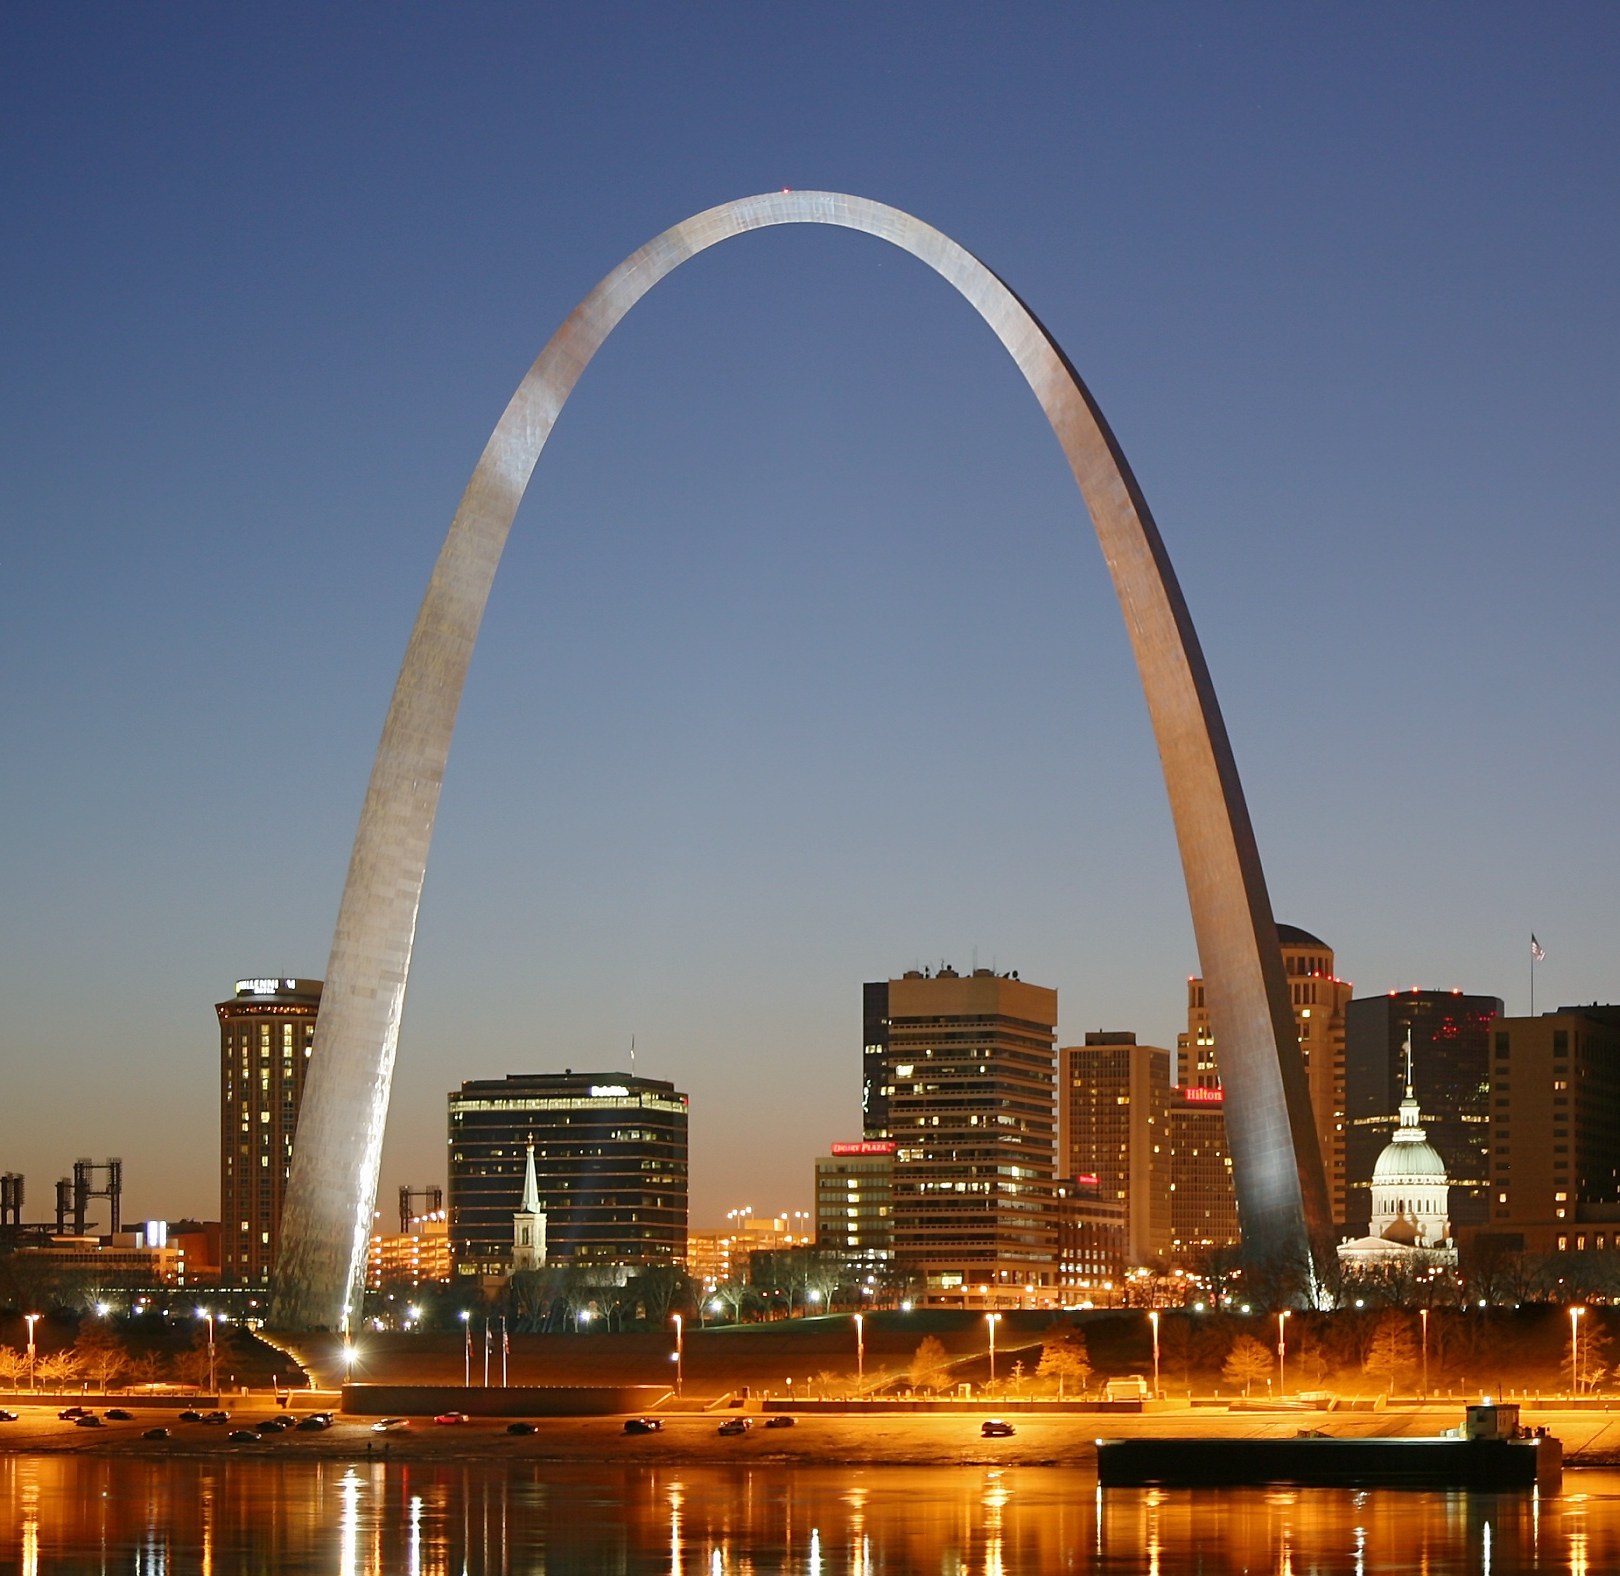 St_Louis_night_expblend_cropped.jpg